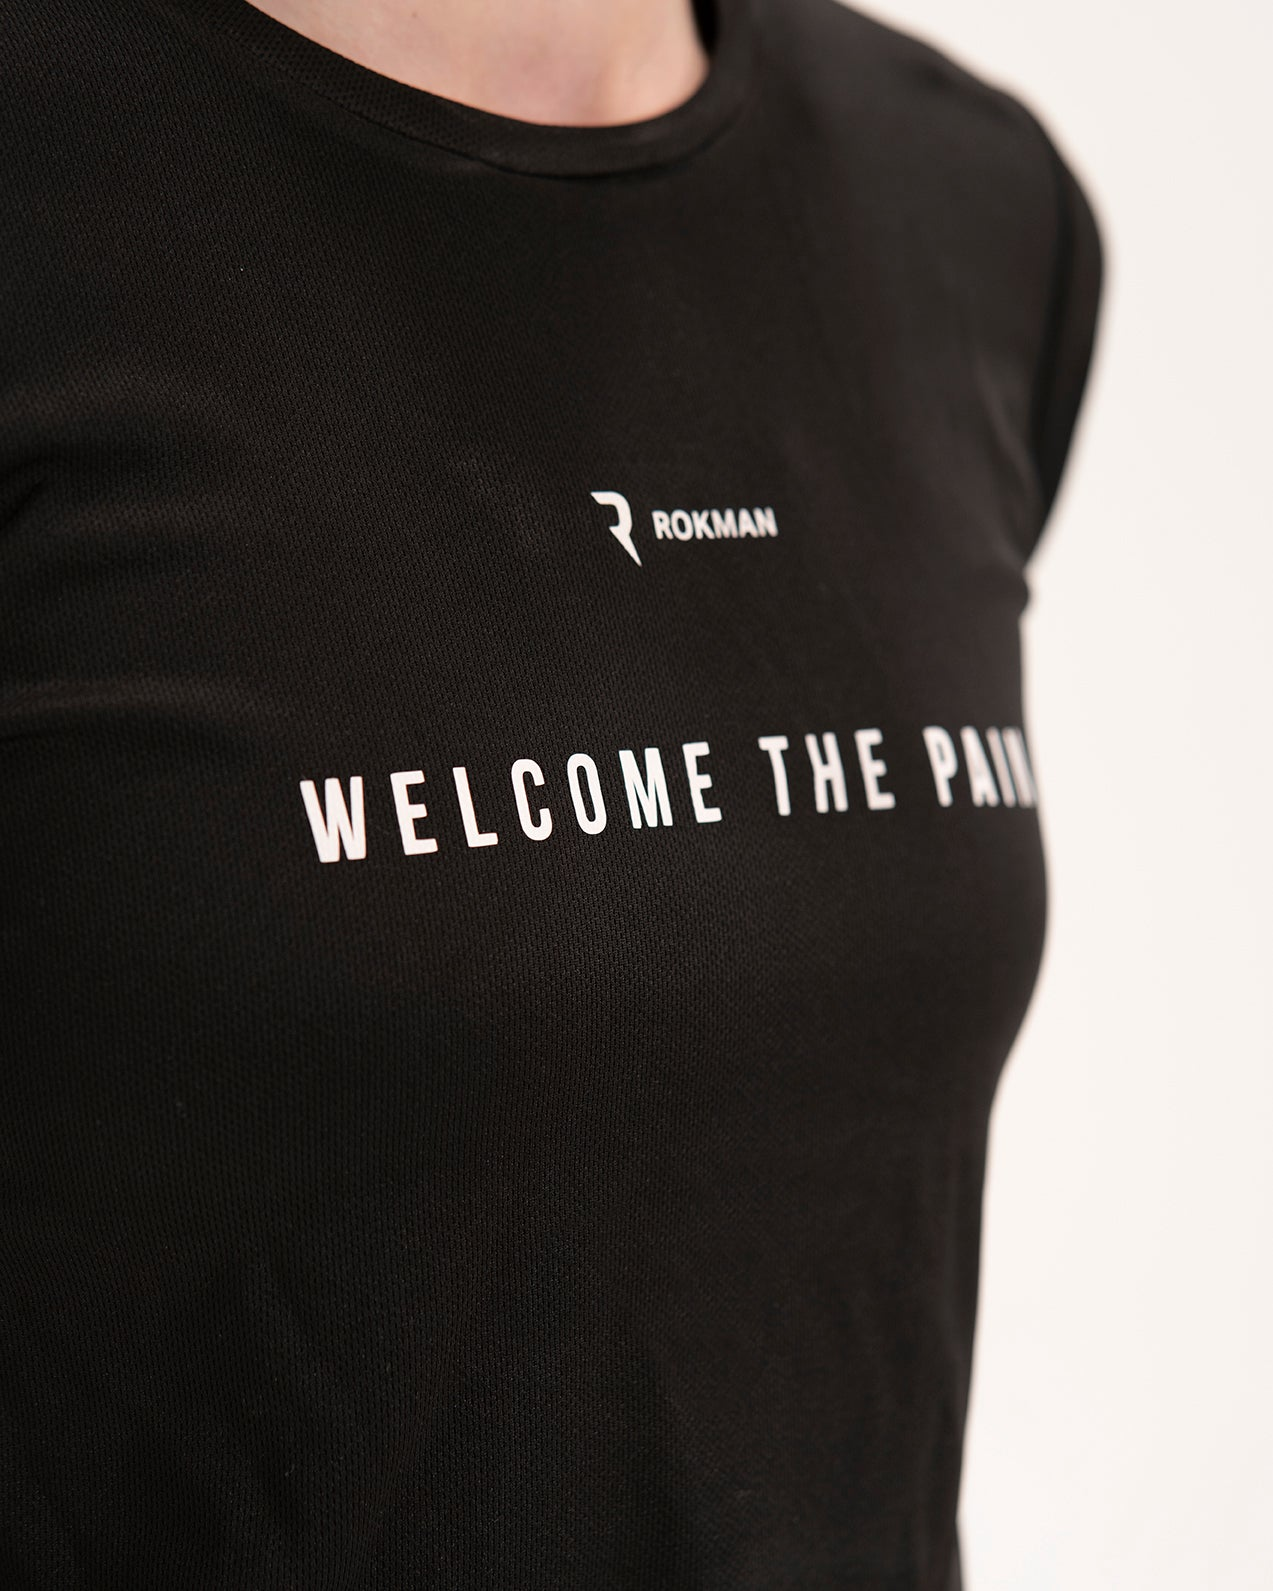 Welcome The Pain Active-Dry Black Female T-Shirt